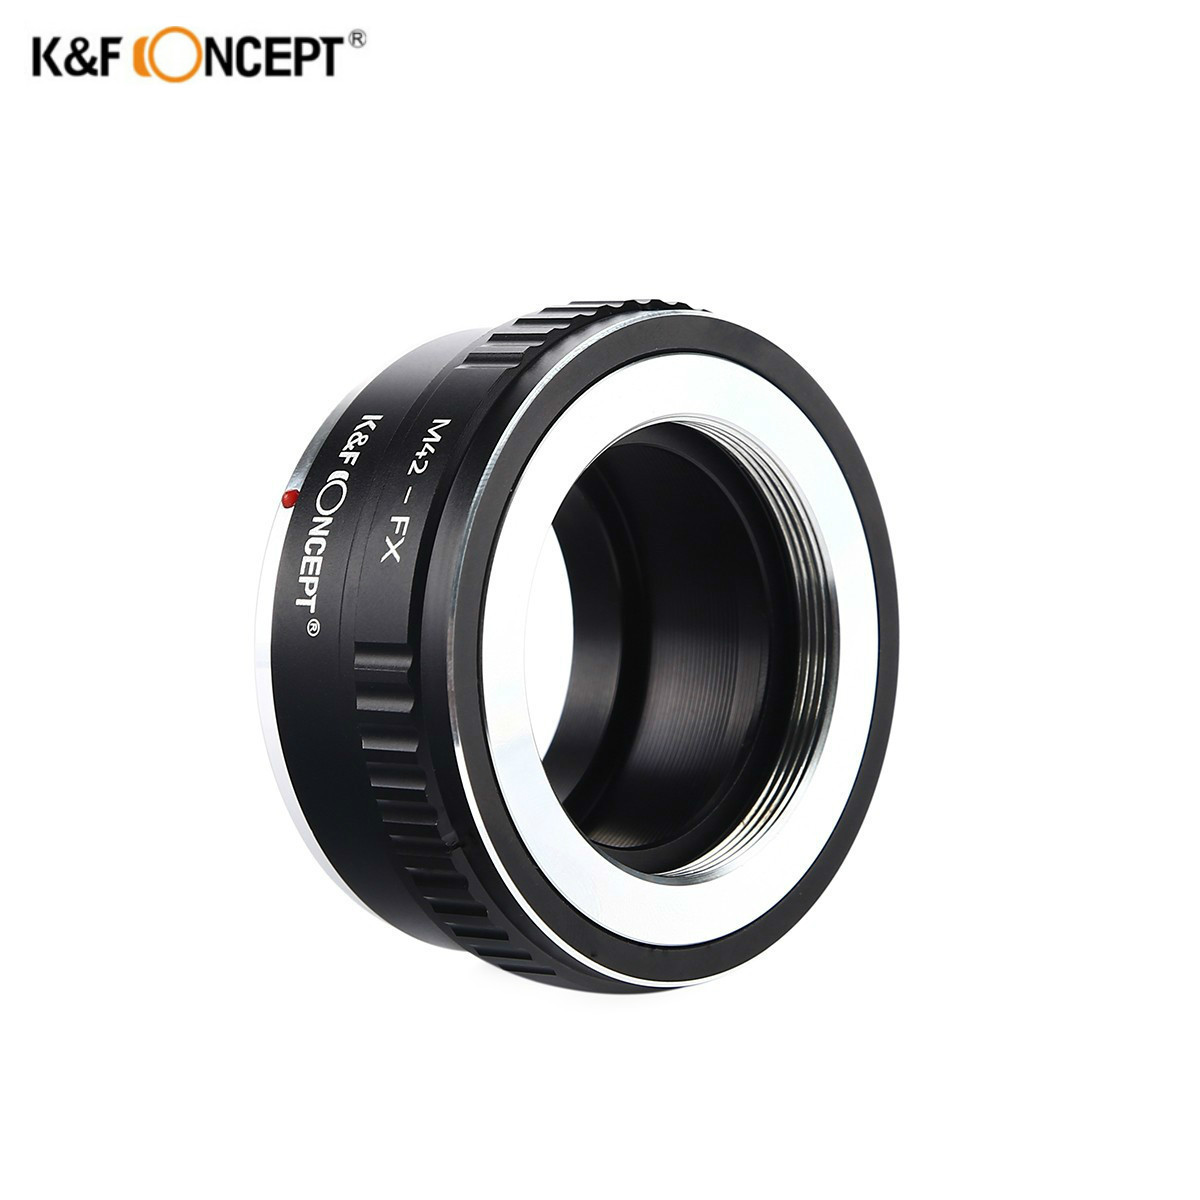 K&F CONCEPT M42-FX Lens Adapter Ring for M42 Mount Screw Lens to Fujifilm X Mount Fuji X-Pro1 X-M1 X-E1 X-E2 Camera save $2 focal reducer speed booster mount adapter ring suit for nikon g to fujifilm fx x a2 x t1 x a1 x e2 x m1 x e1 x pro1